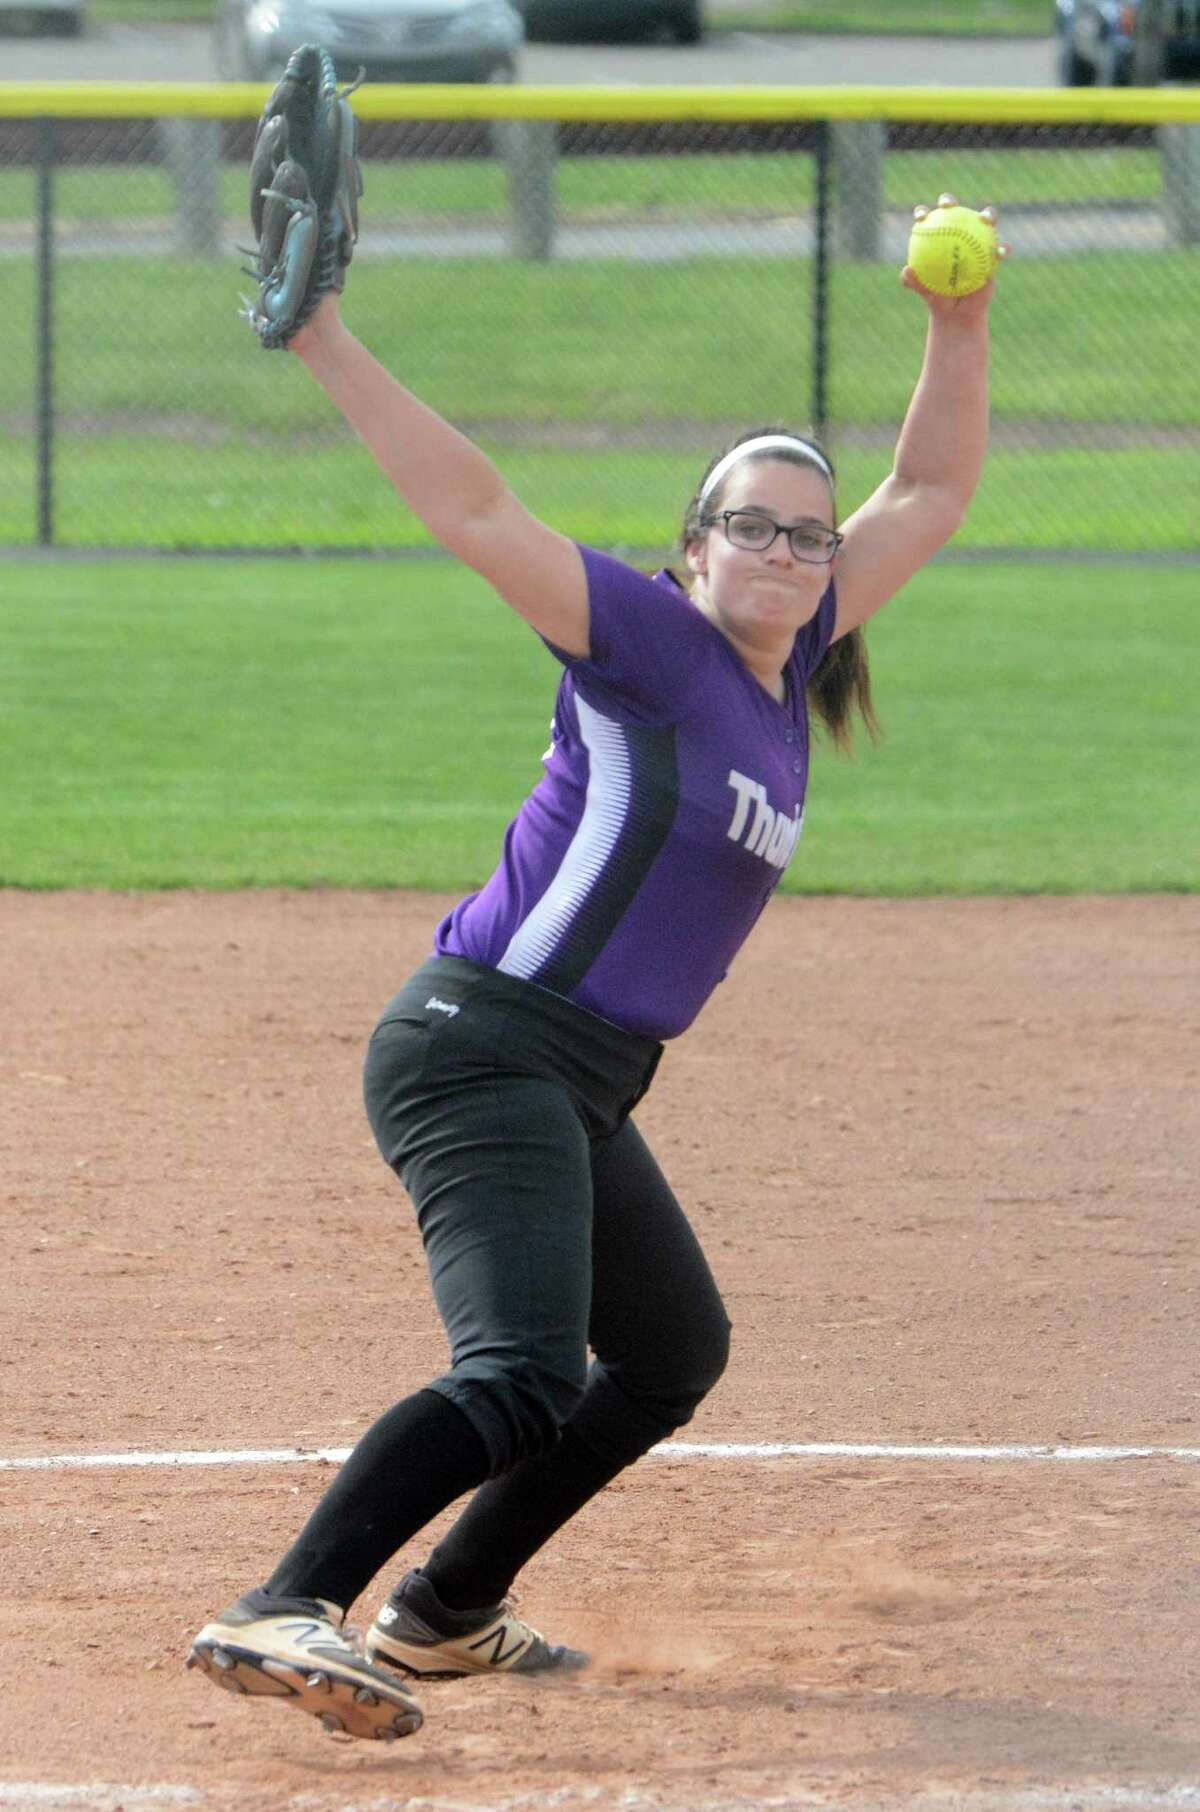 North Branford pitcher Sydney Senerchia has a 15-0 record with a 0.15 ERA to go along with 187 strikeouts in 95 innings pitched.